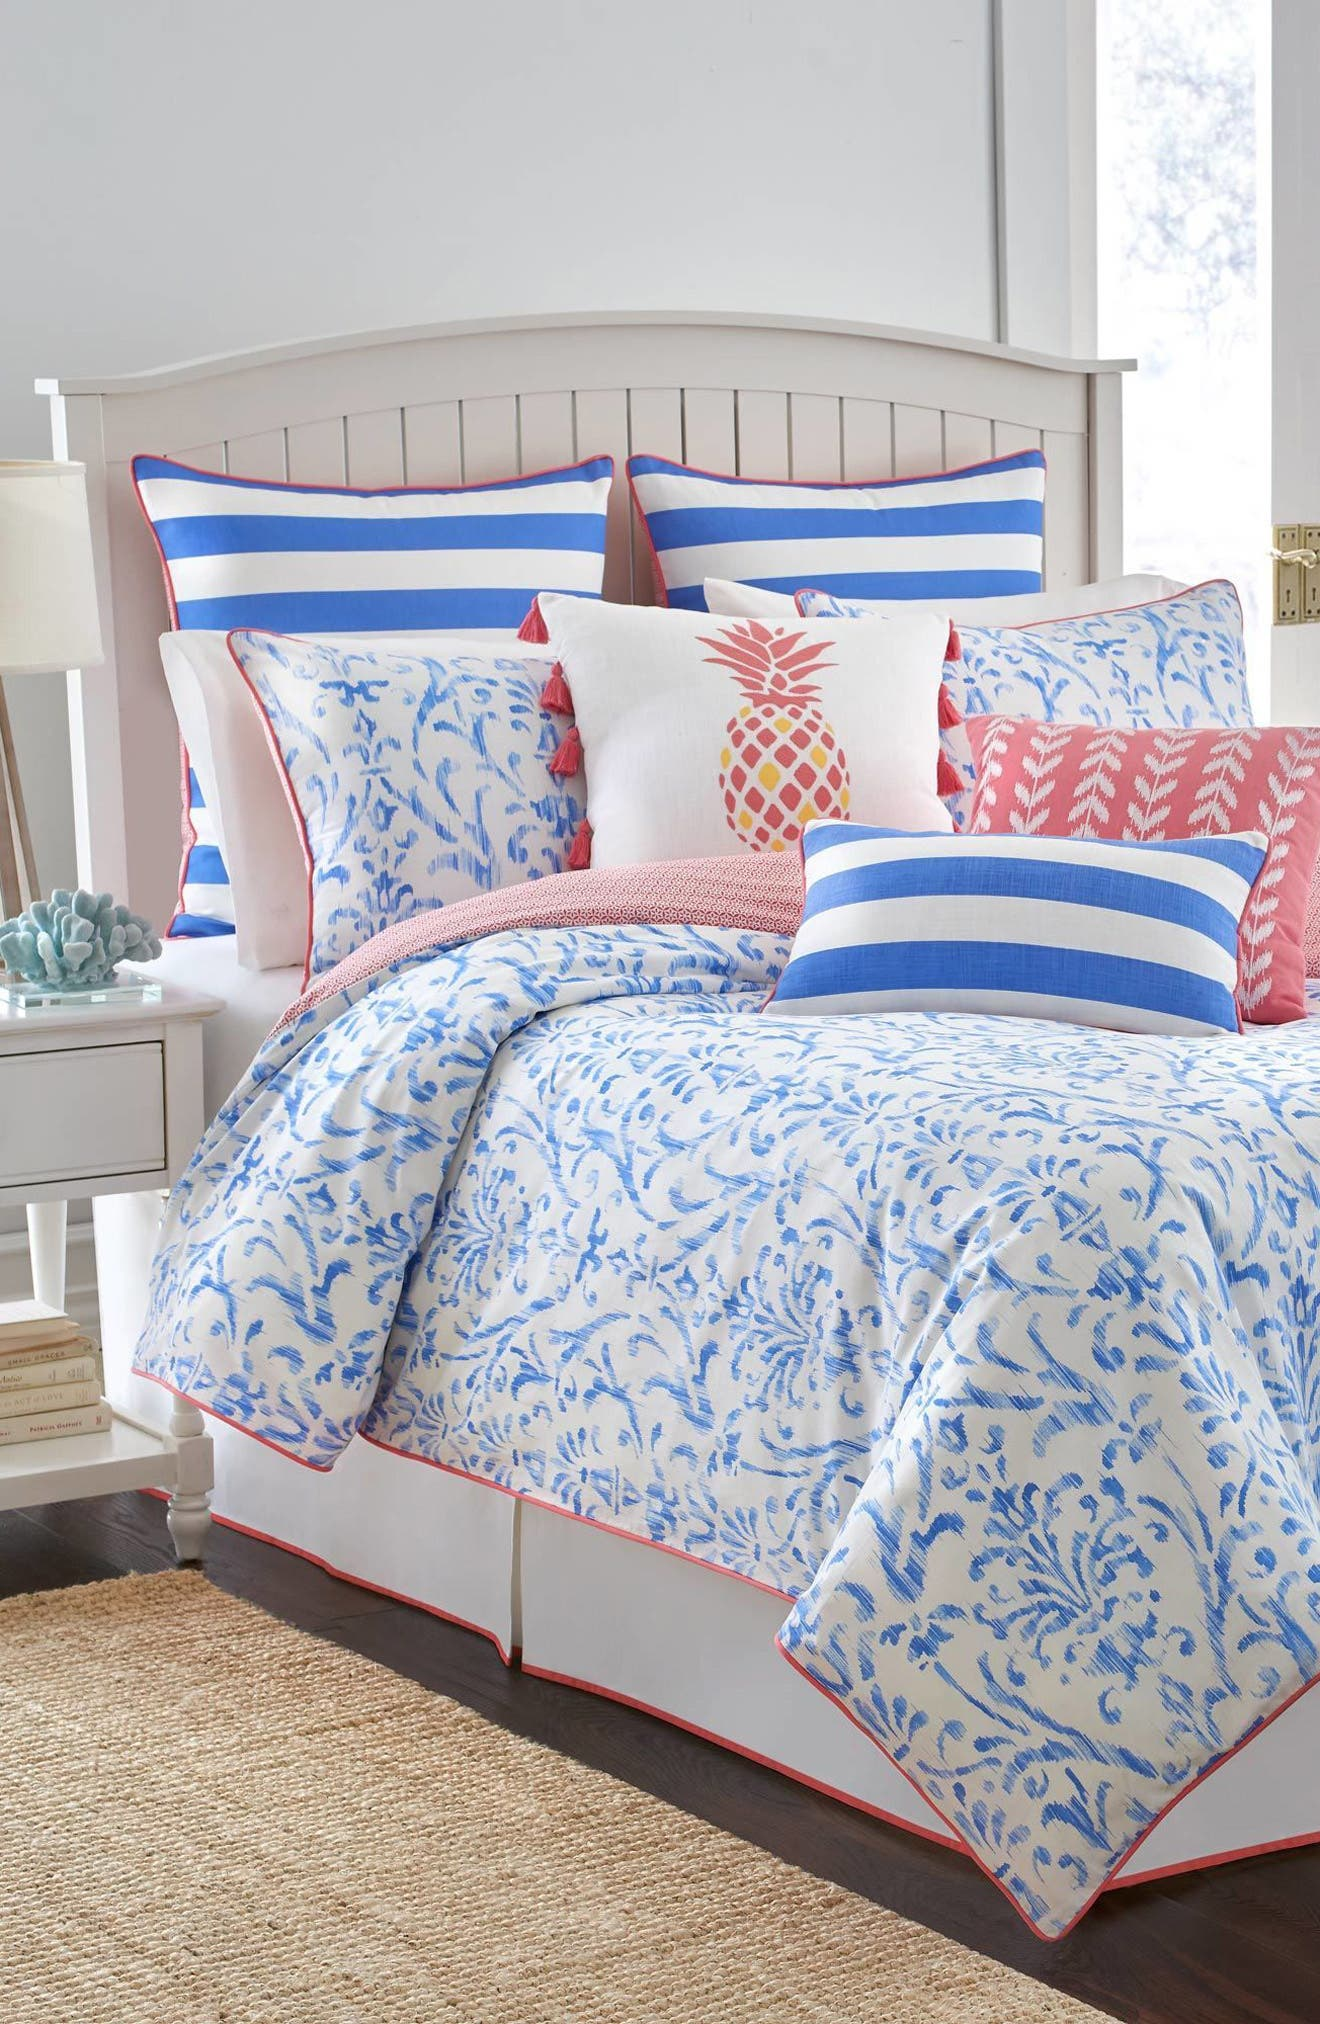 Southern Tide Coastal Ikat Comforter, Sham & Bed Skirt Set